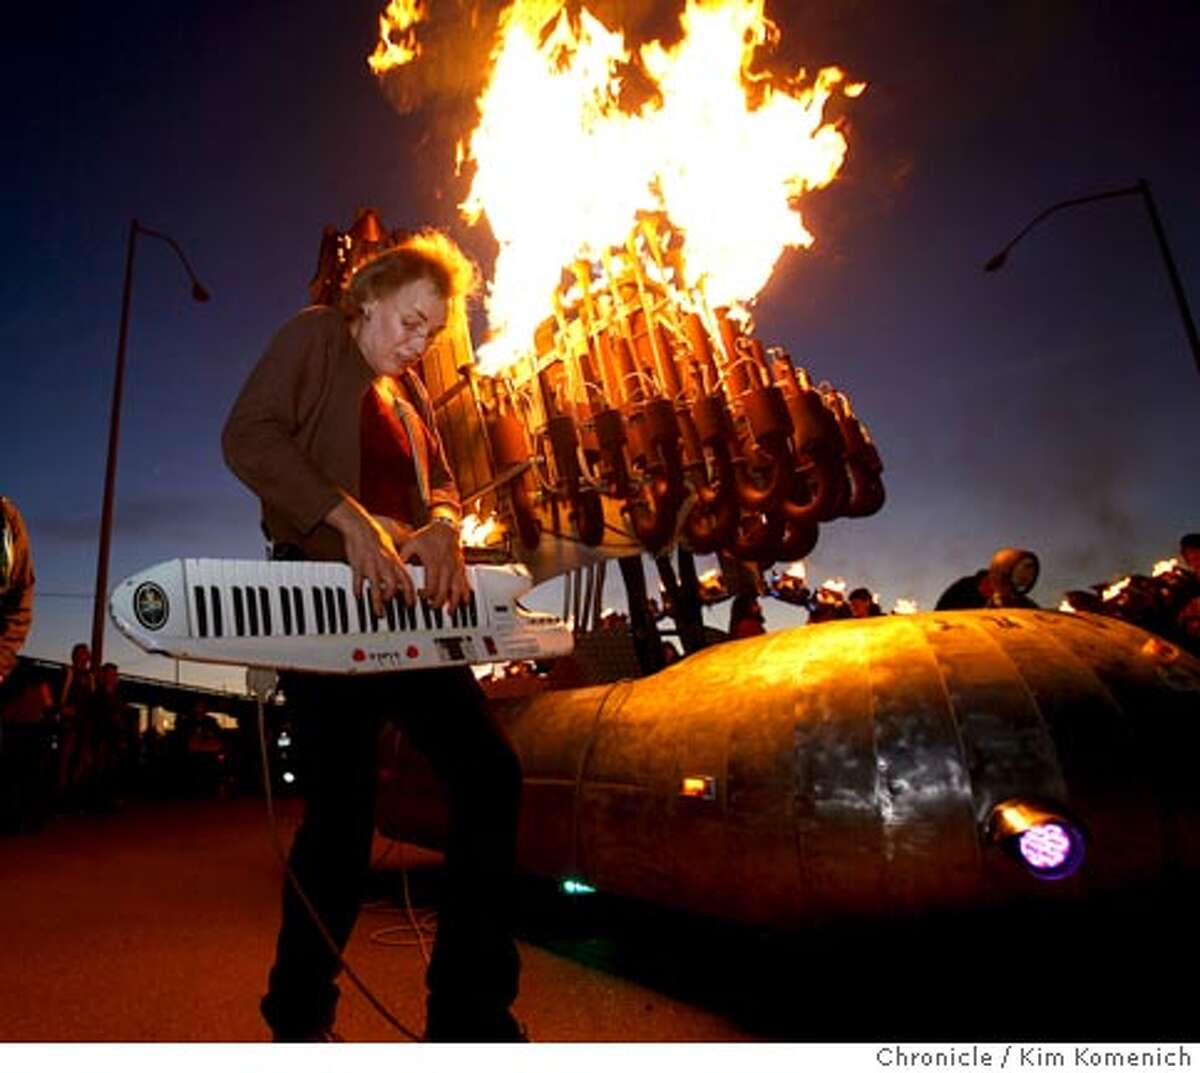 """""""Lucyfer"""" (Lucy Hosking of Santa Cruz) plays """"Satan's Calliope"""" in Oakland Thursday night at the seventh annual Fire Arts Festival sponsored by The Crucible, an Oakland arts collective. The festival is an annual gathering of Burning Man artists who light their sculptures on fire in a West Oakland parking lot to preview the interactive pyrotechnic art they will be bringing to Burning Man in late August. Photo by Kim Komenich/The Chronicle **Lucy Hosking"""